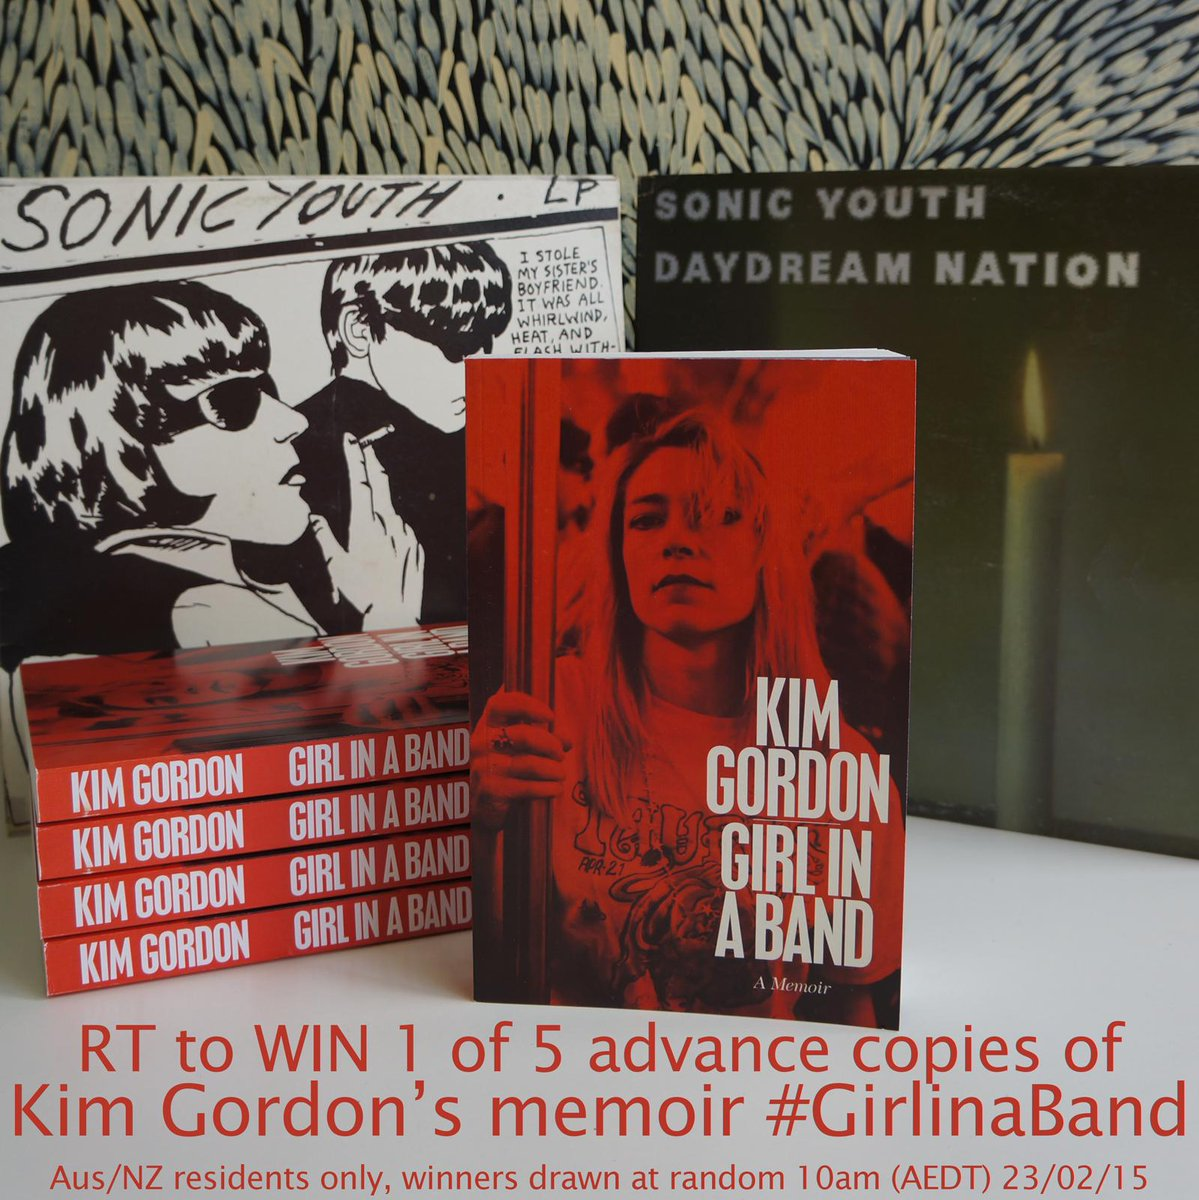 The stunning #GirlinaBand by @KimletGordon is out next month, but we're offering advance copies - just RT to WIN! http://t.co/dzMDazyqde